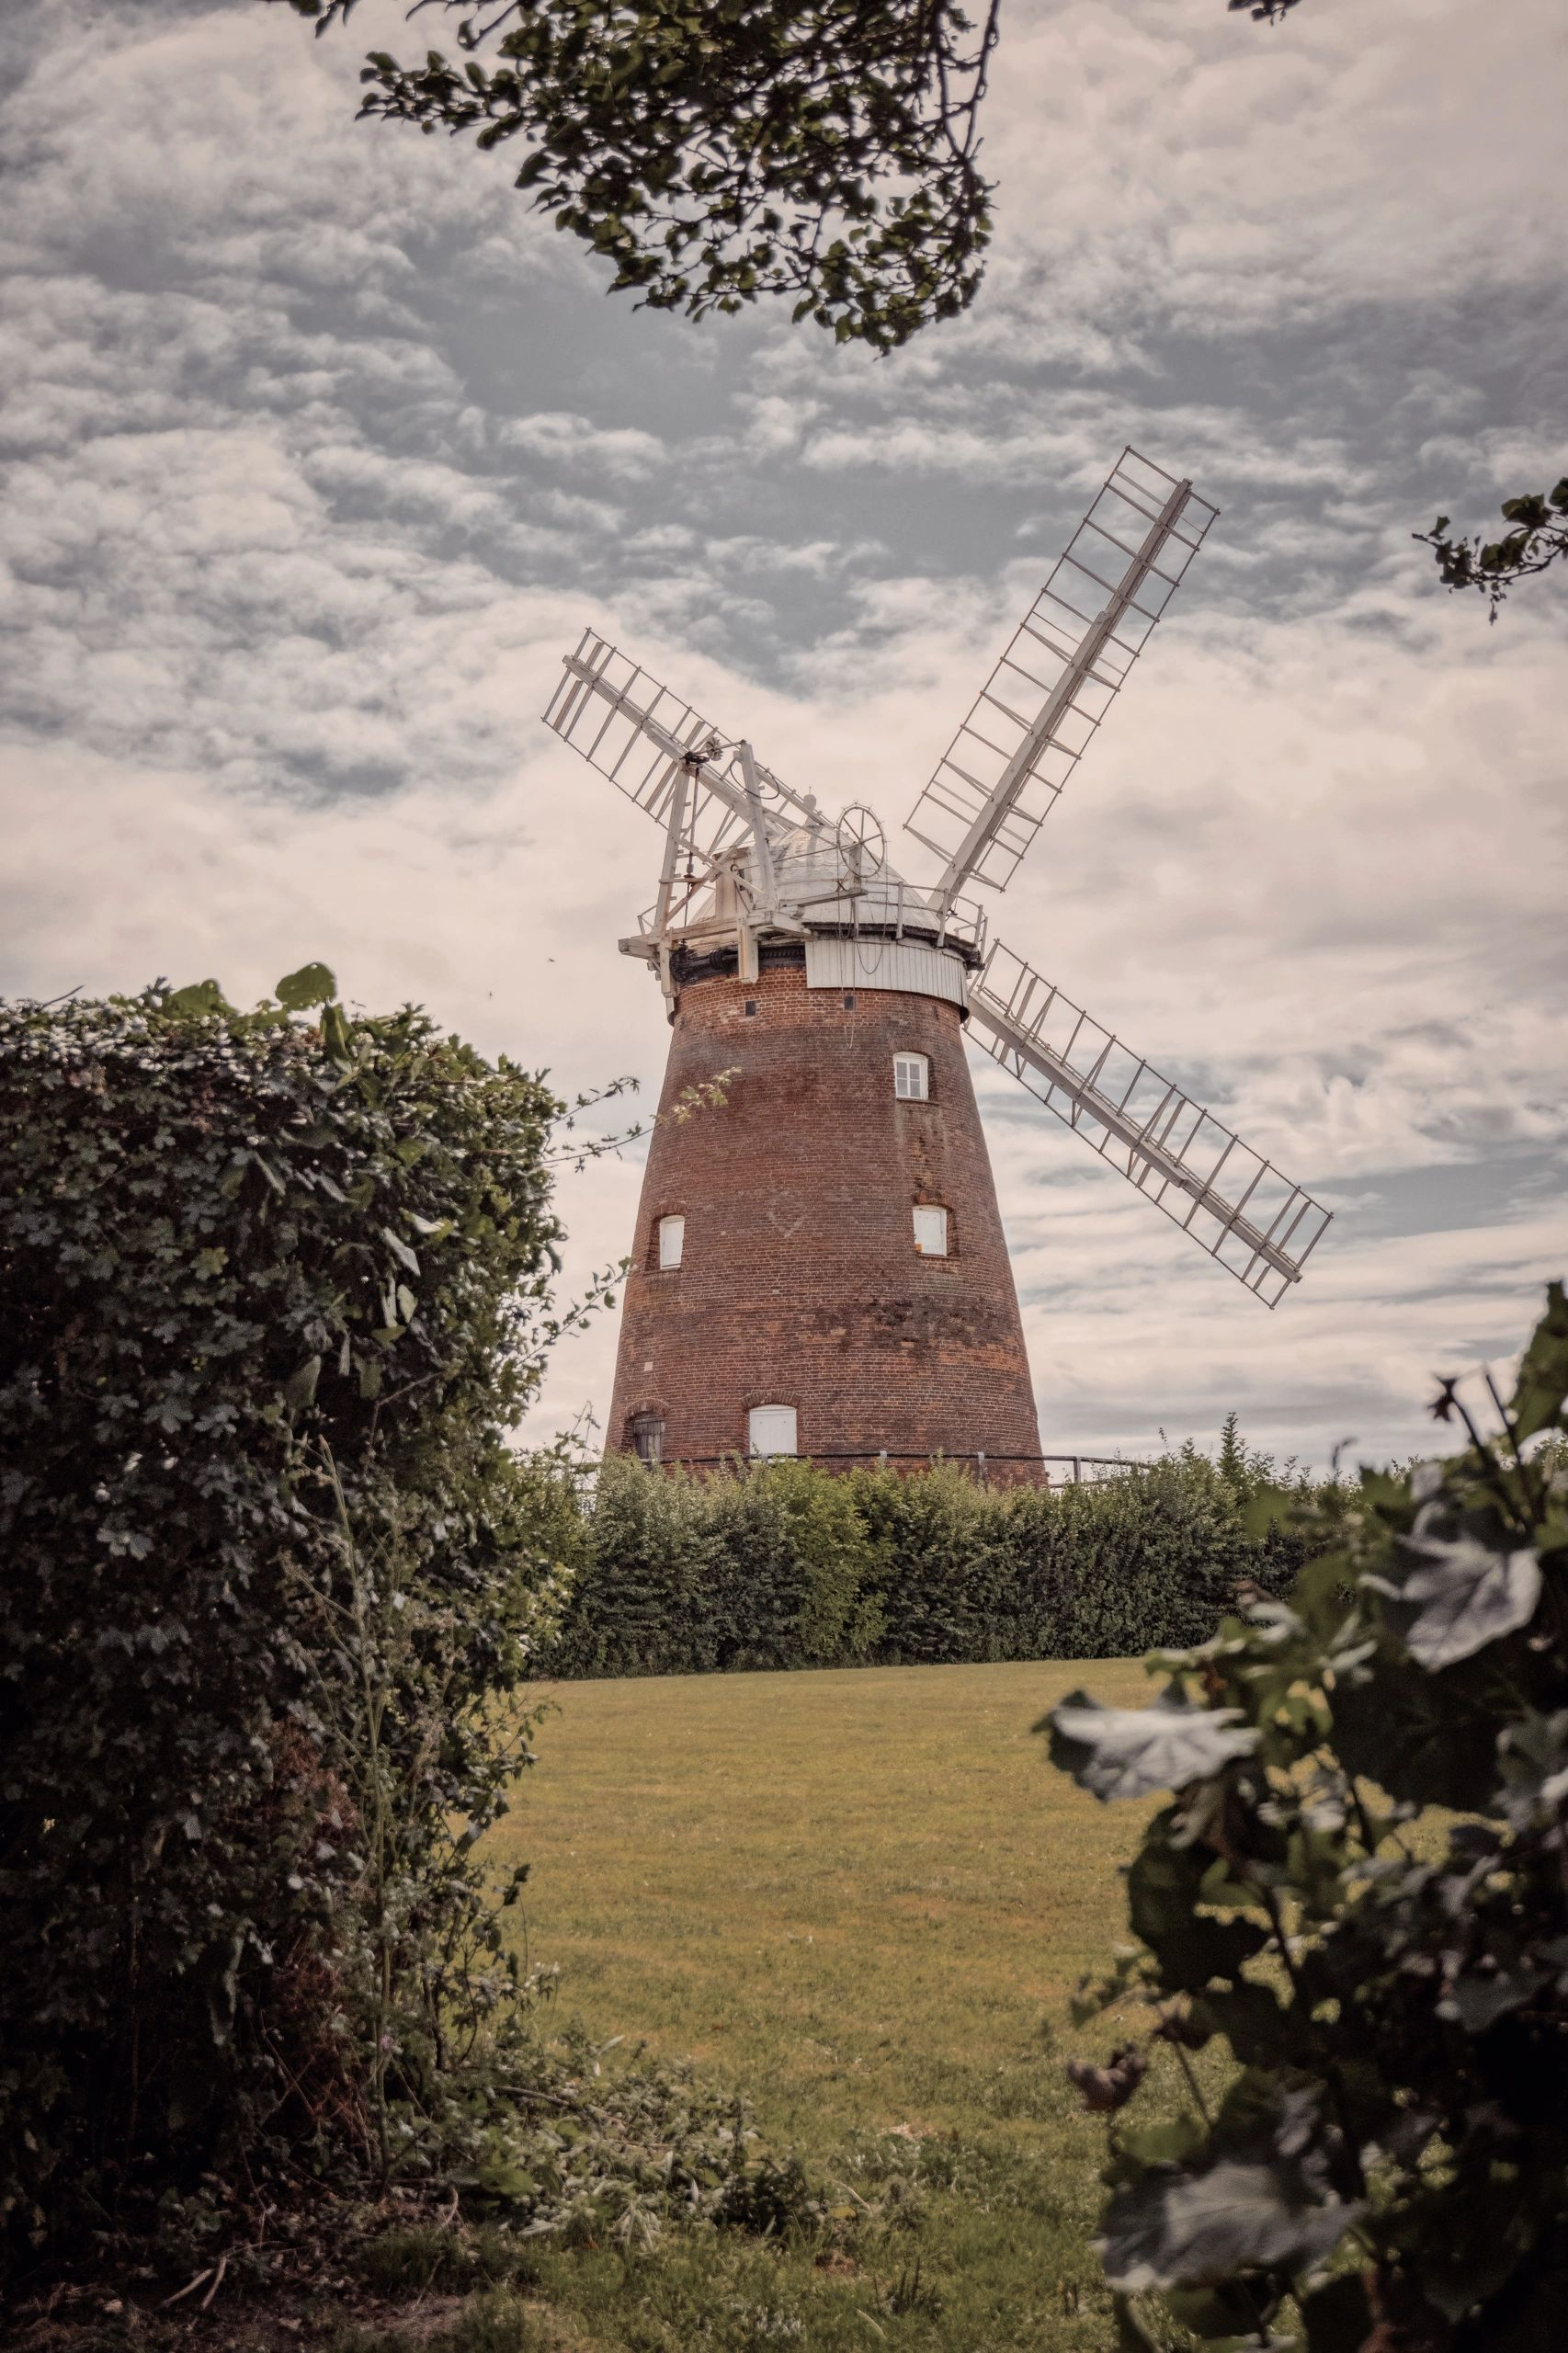 "{""blocks"":[{""key"":""qqtu"",""text"":""Thaxted windmill, built in 1804."",""type"":""unstyled"",""depth"":0,""inlineStyleRanges"":[],""entityRanges"":[],""data"":{}}],""entityMap"":{}}"